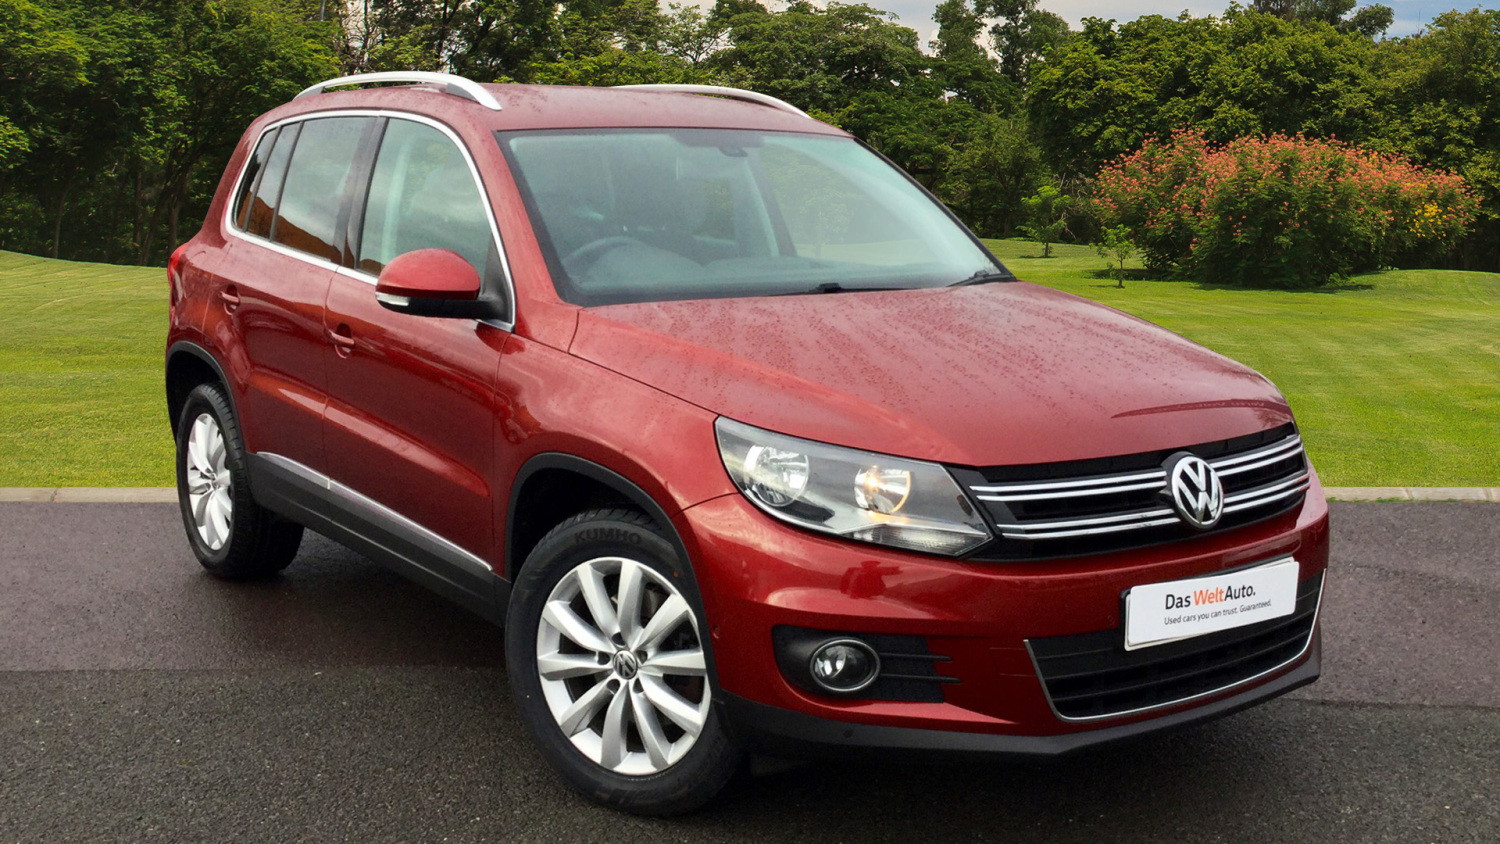 used volkswagen tiguan 2 0 tdi bluemotion tech match 5dr 2wd diesel estate for sale vertu. Black Bedroom Furniture Sets. Home Design Ideas